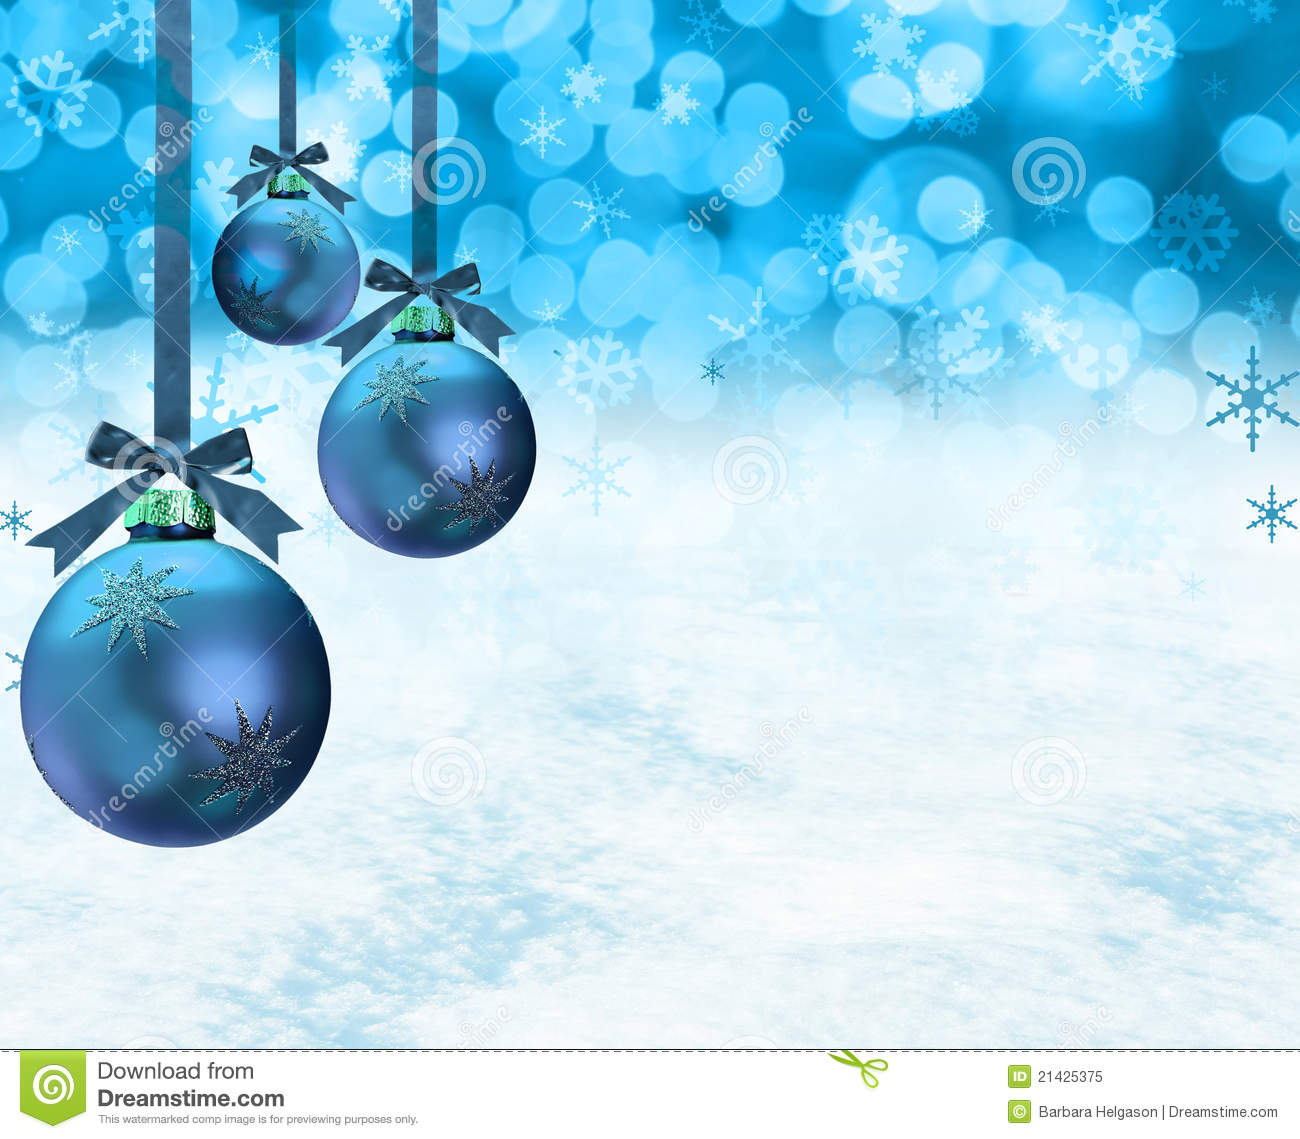 christmas ornaments snow scene royalty free stock photo image